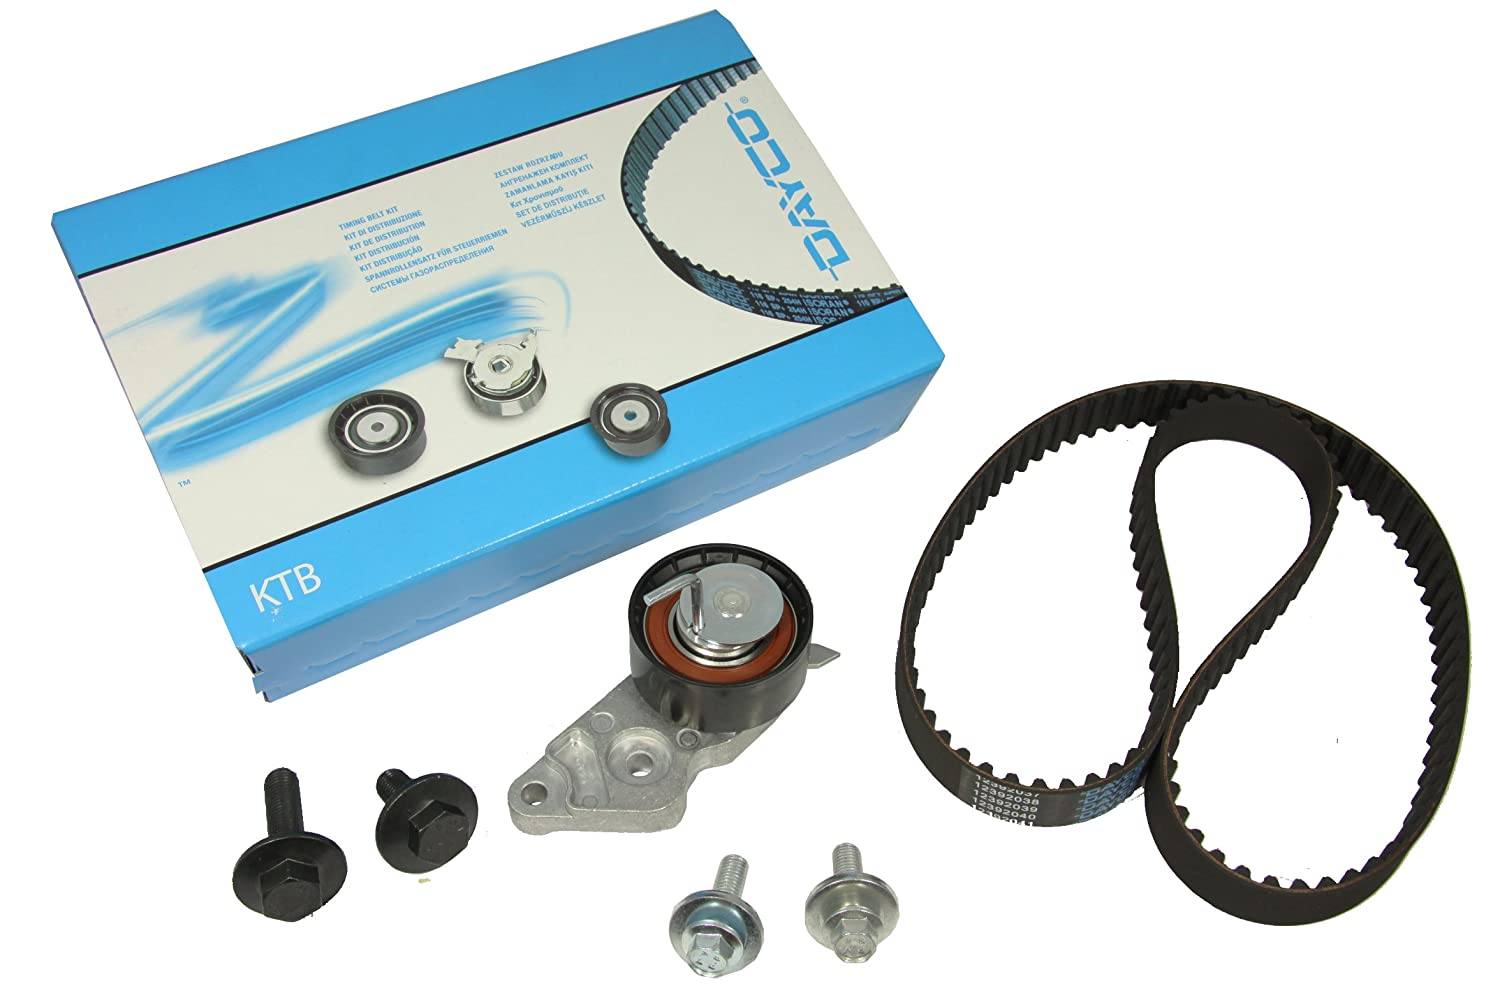 Dayco Ktb286 Timing Belt Kit Car Motorbike Porsche